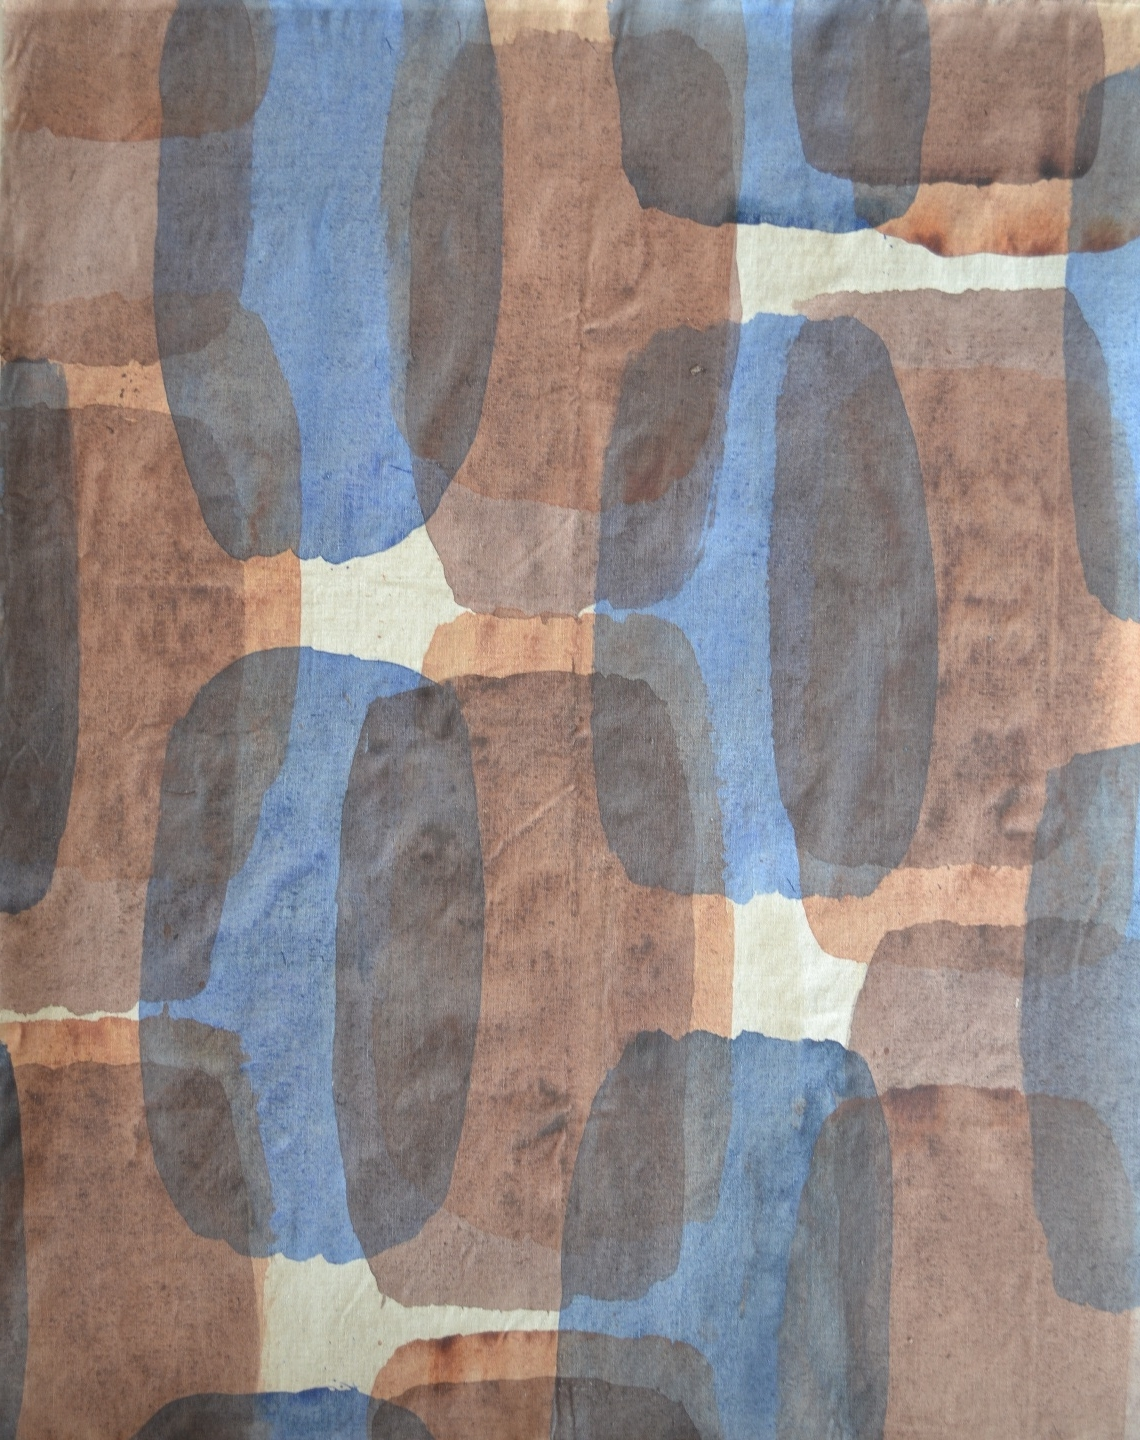 S,. Sutro, Time and Timelessness #3, Acrylic on Linen Canvas, 42x34,  2010.jpg